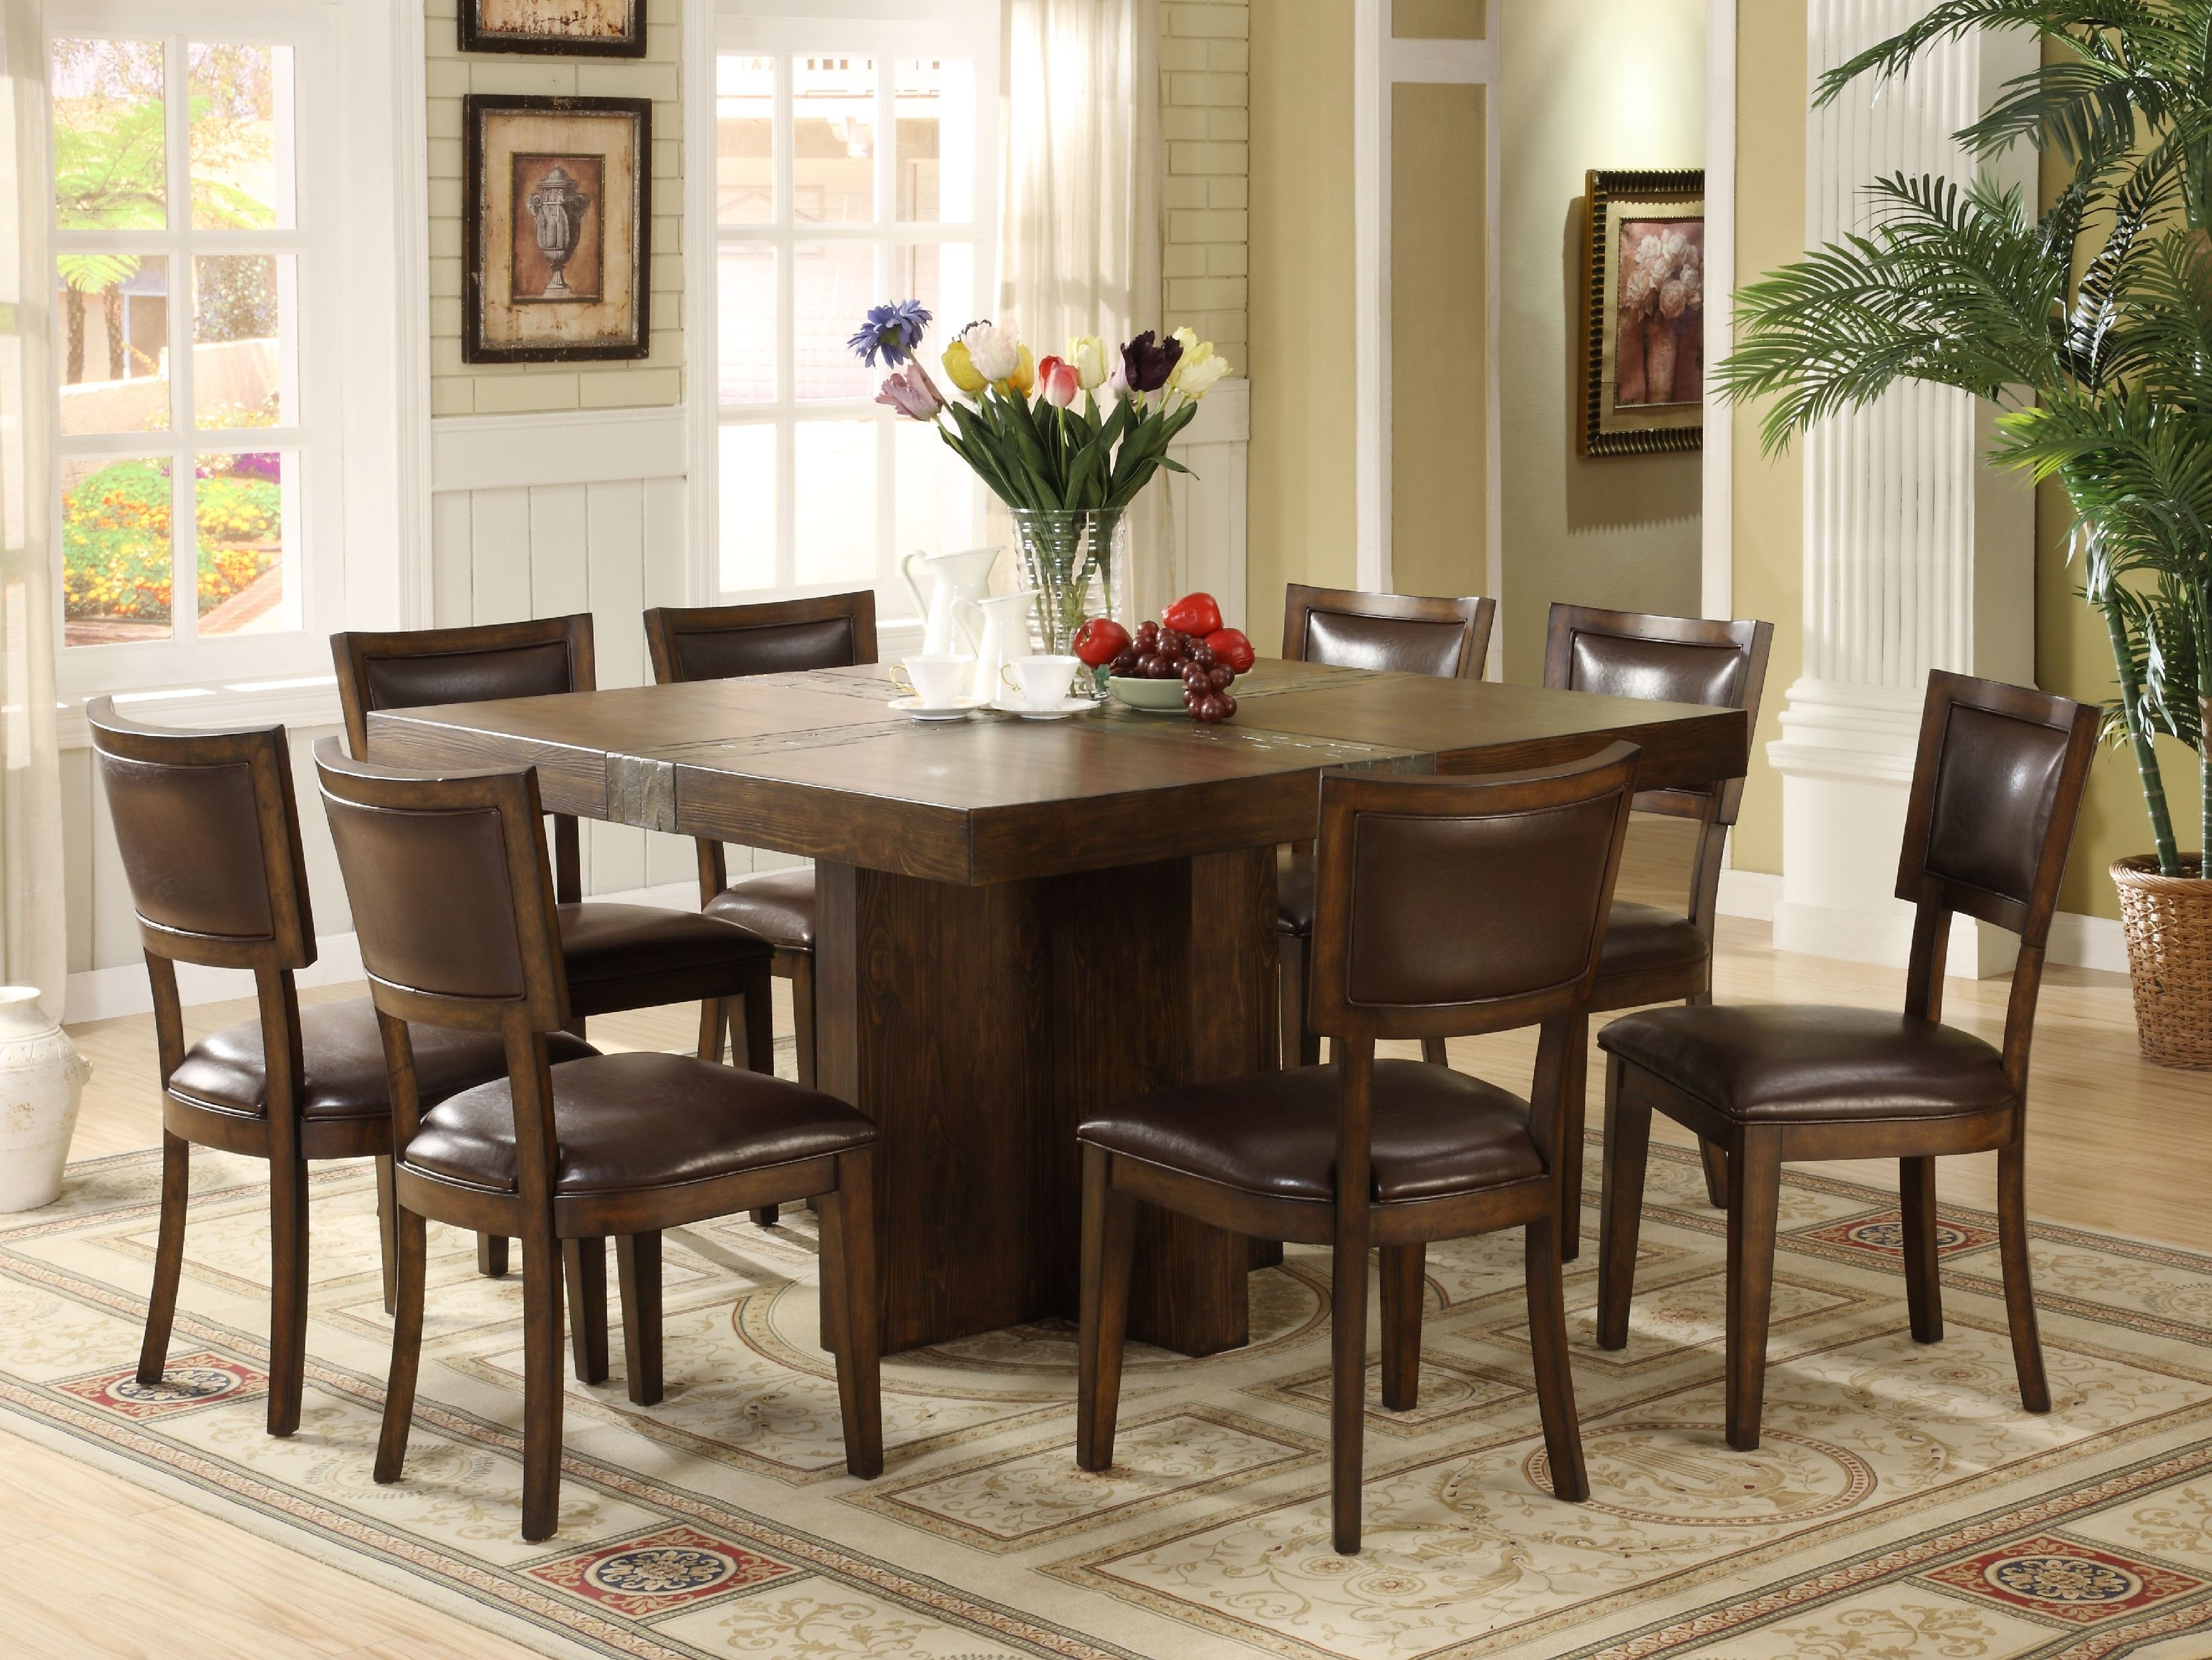 Dining Tables Seats 8 In Newest 8 Seater Square Table And Chairs Charming Ideas Square Dining Table (View 8 of 25)